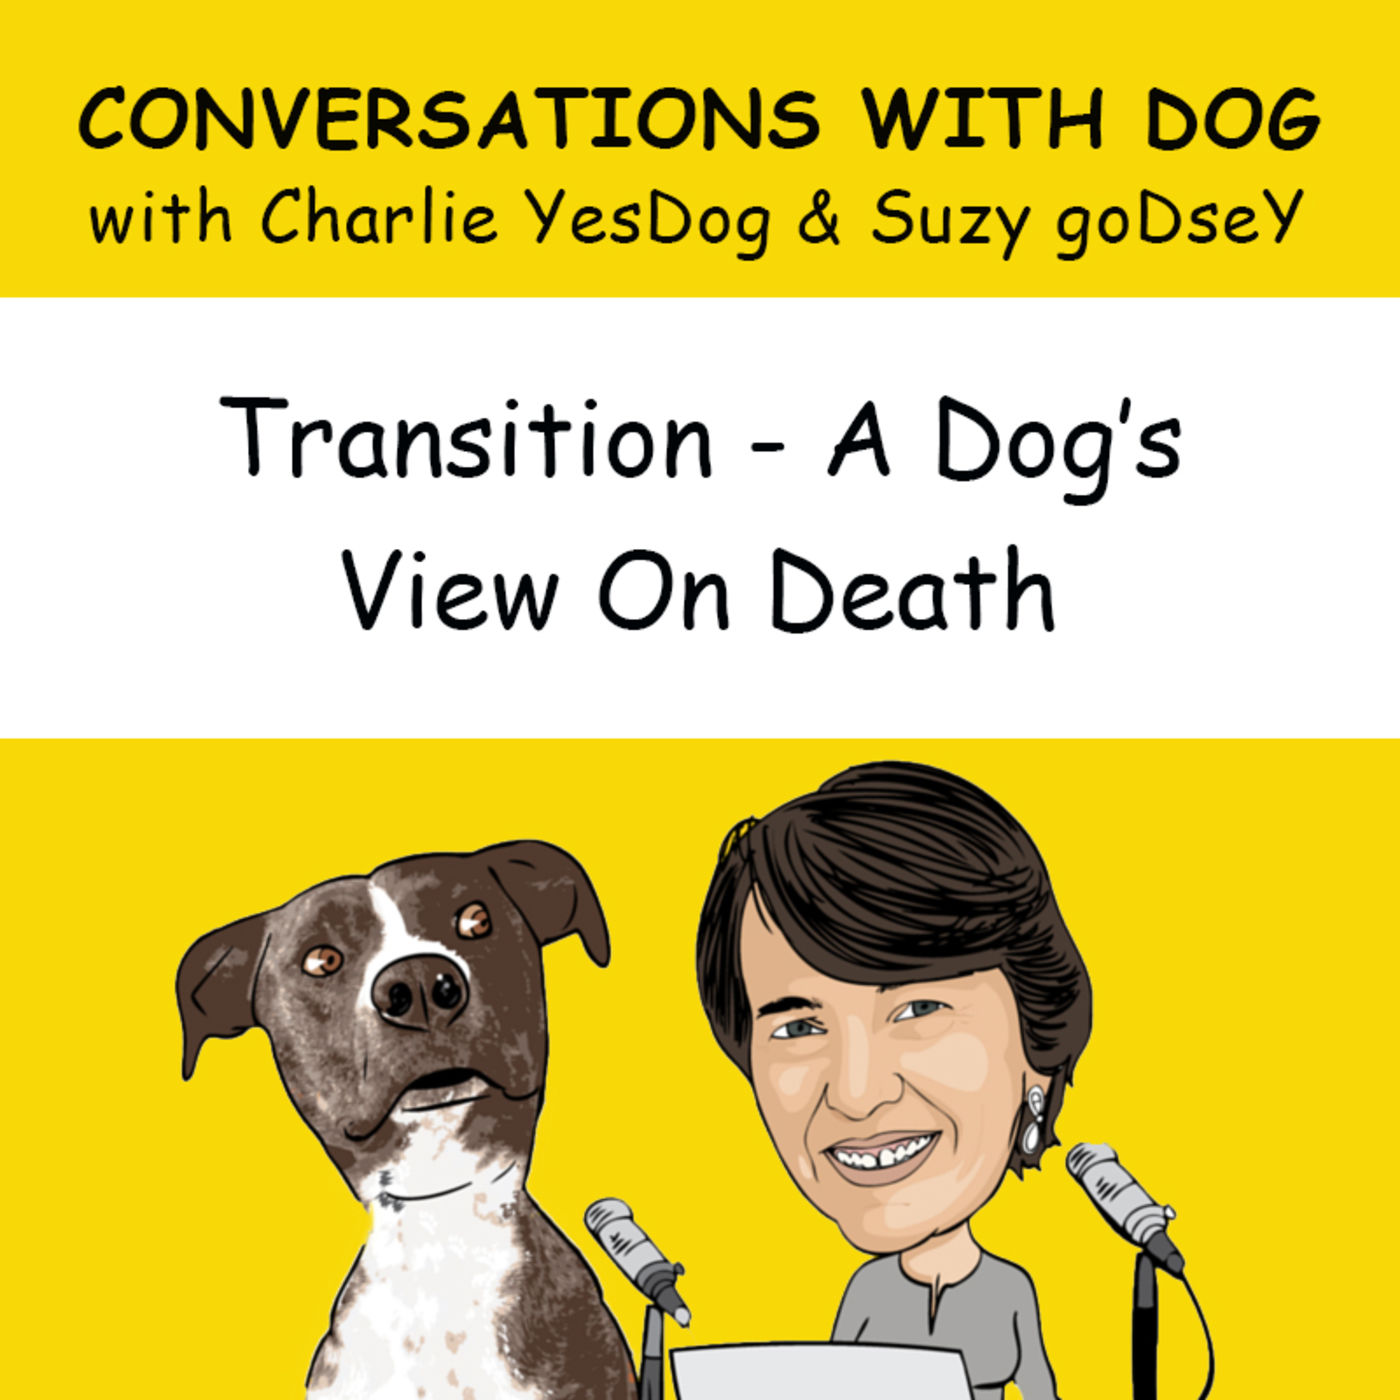 Transition- A Dog's View On Death